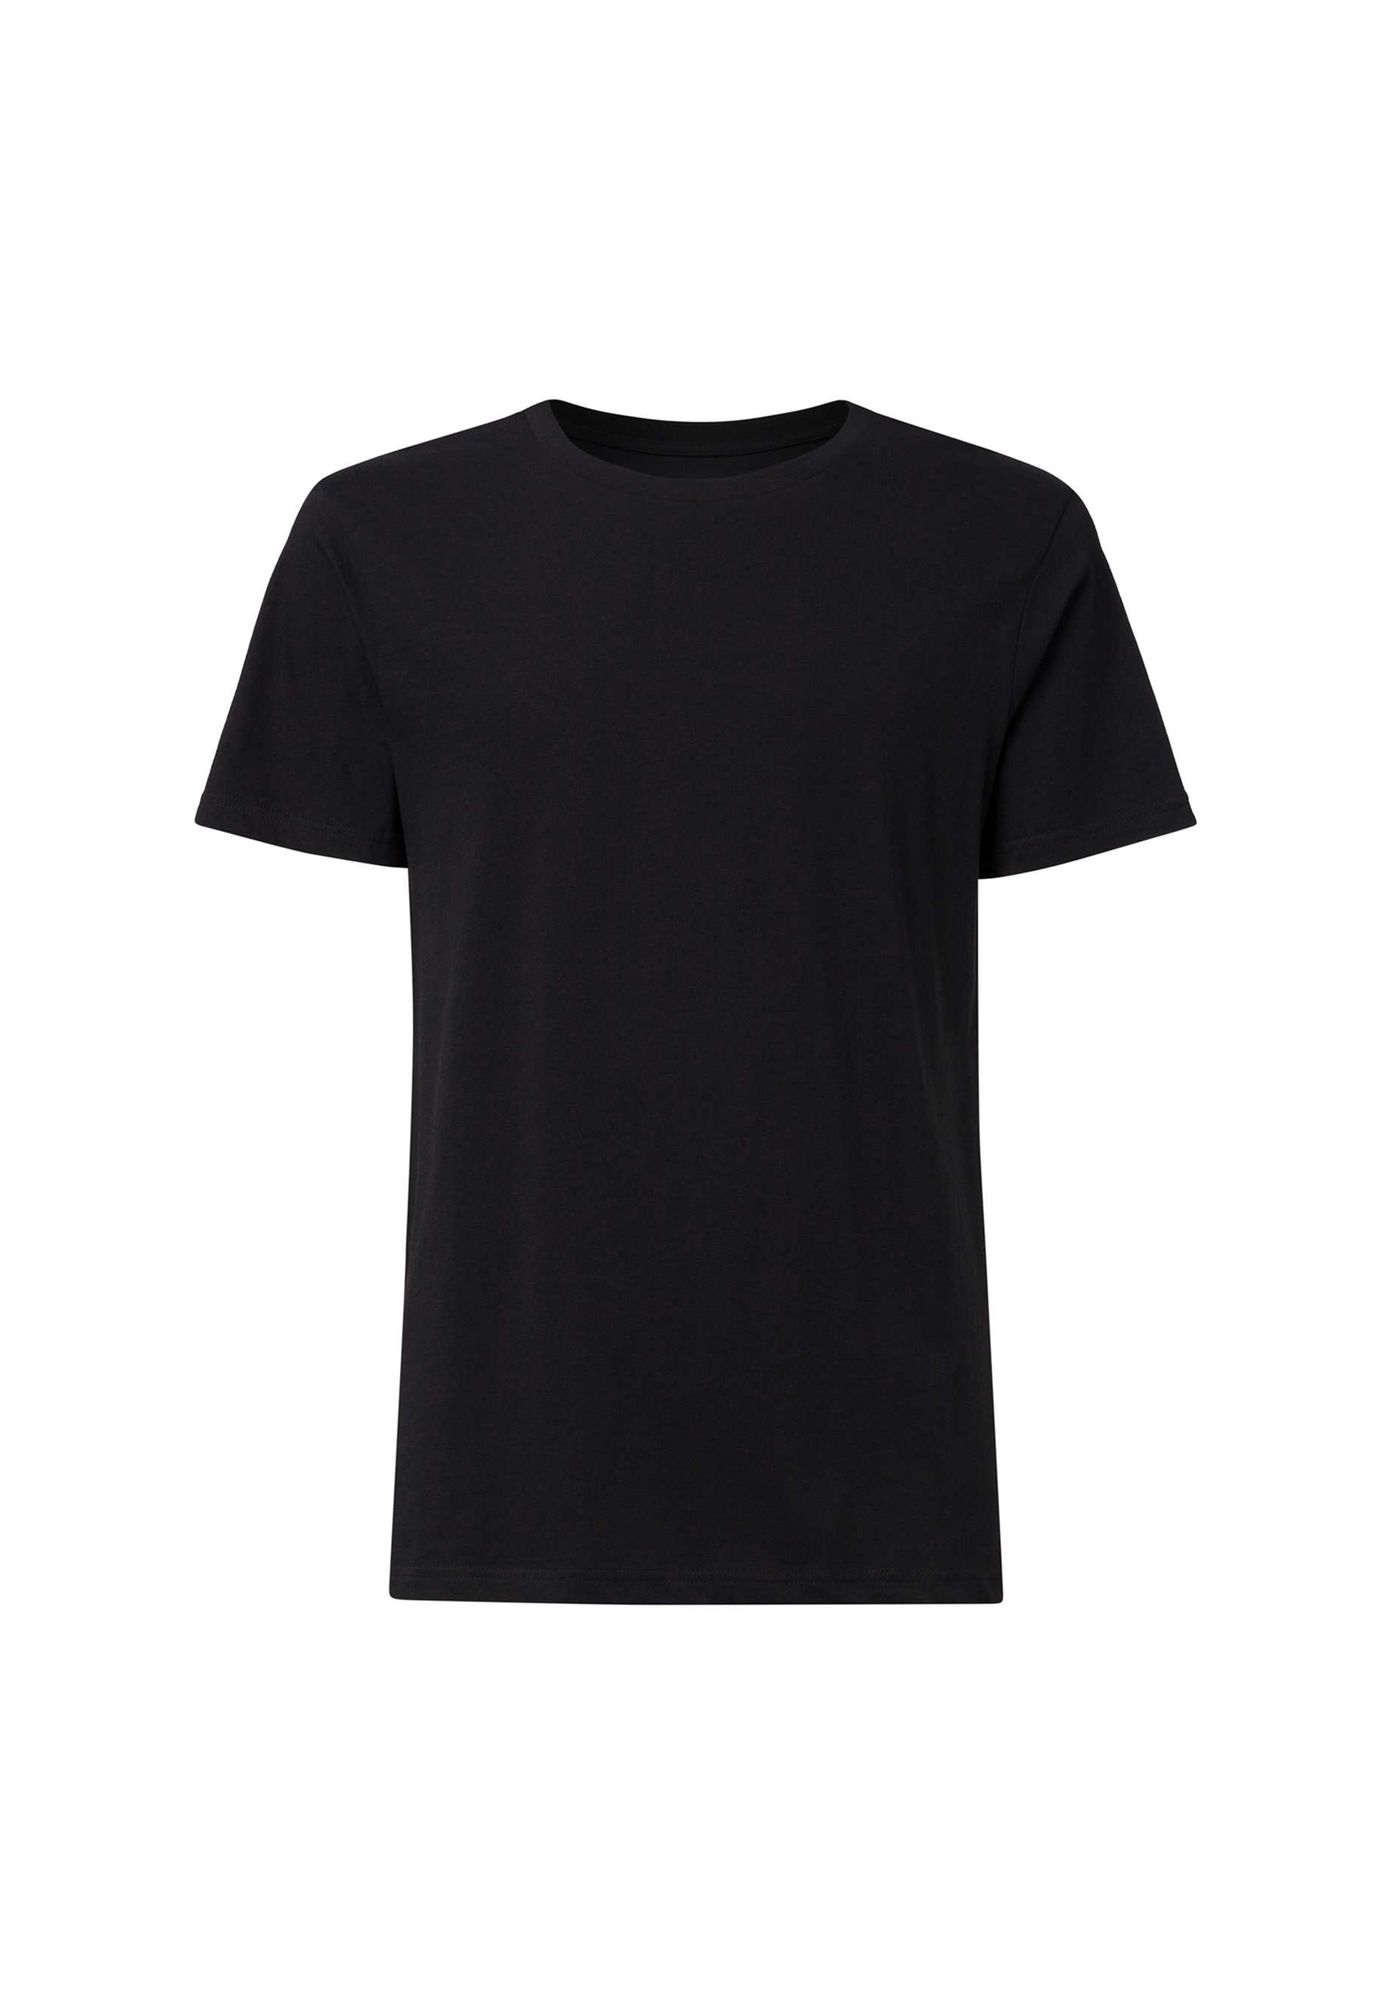 BTD05 T-Shirt Black